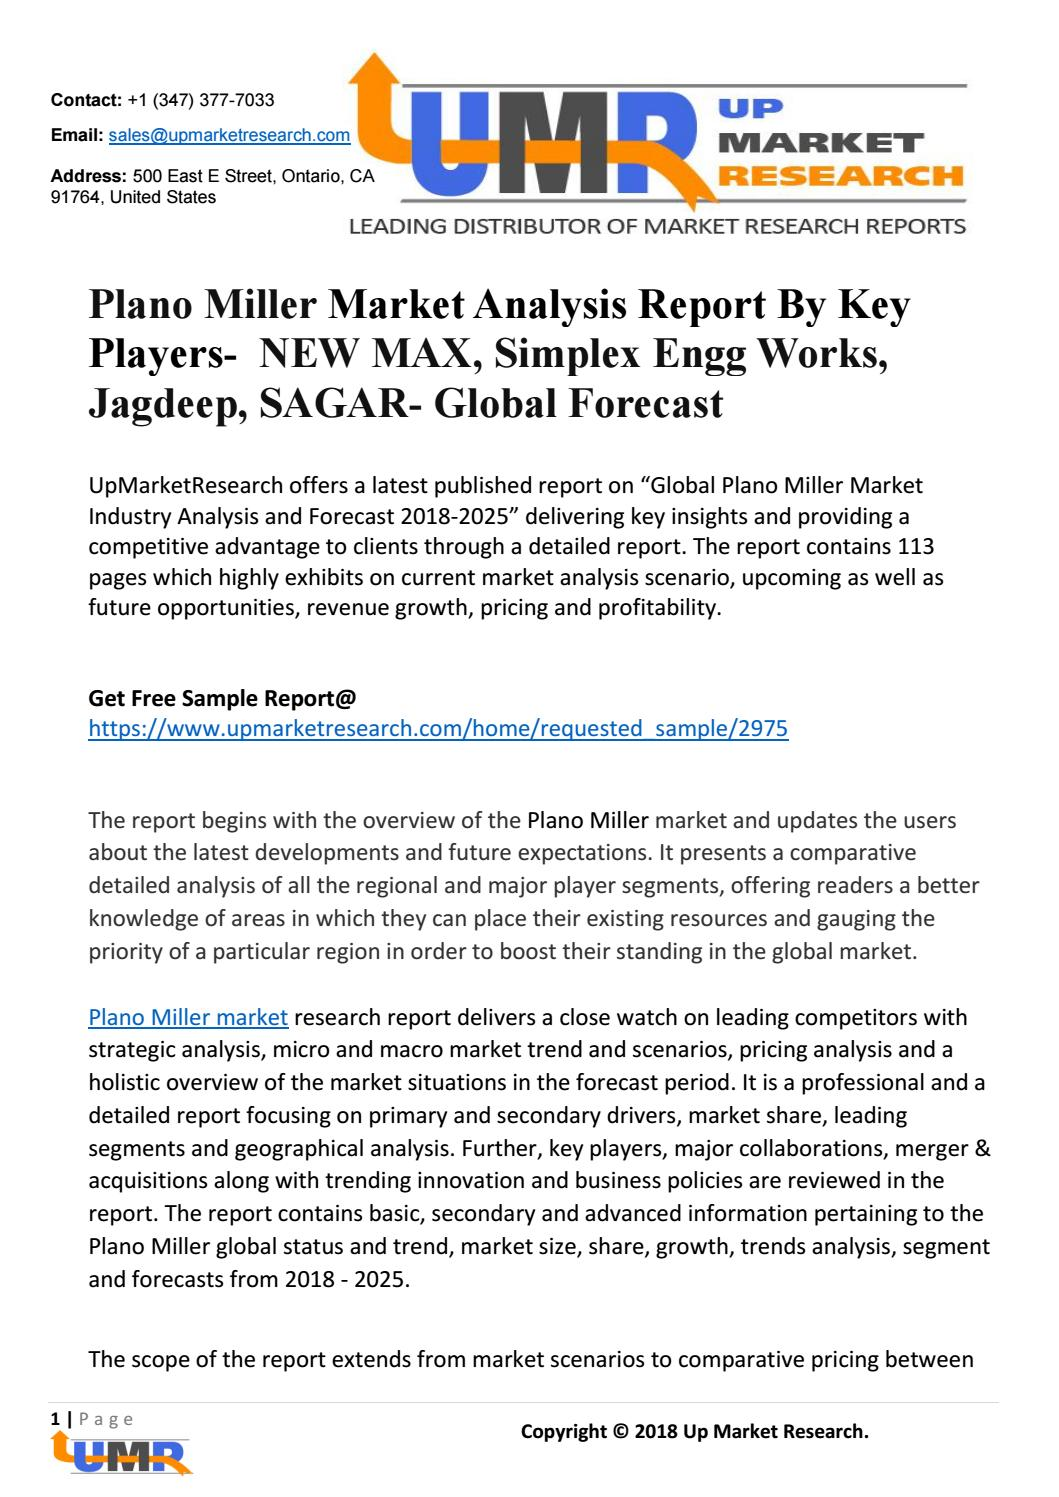 Plano Miller Market Analysis Report By Key Players- NEW MAX